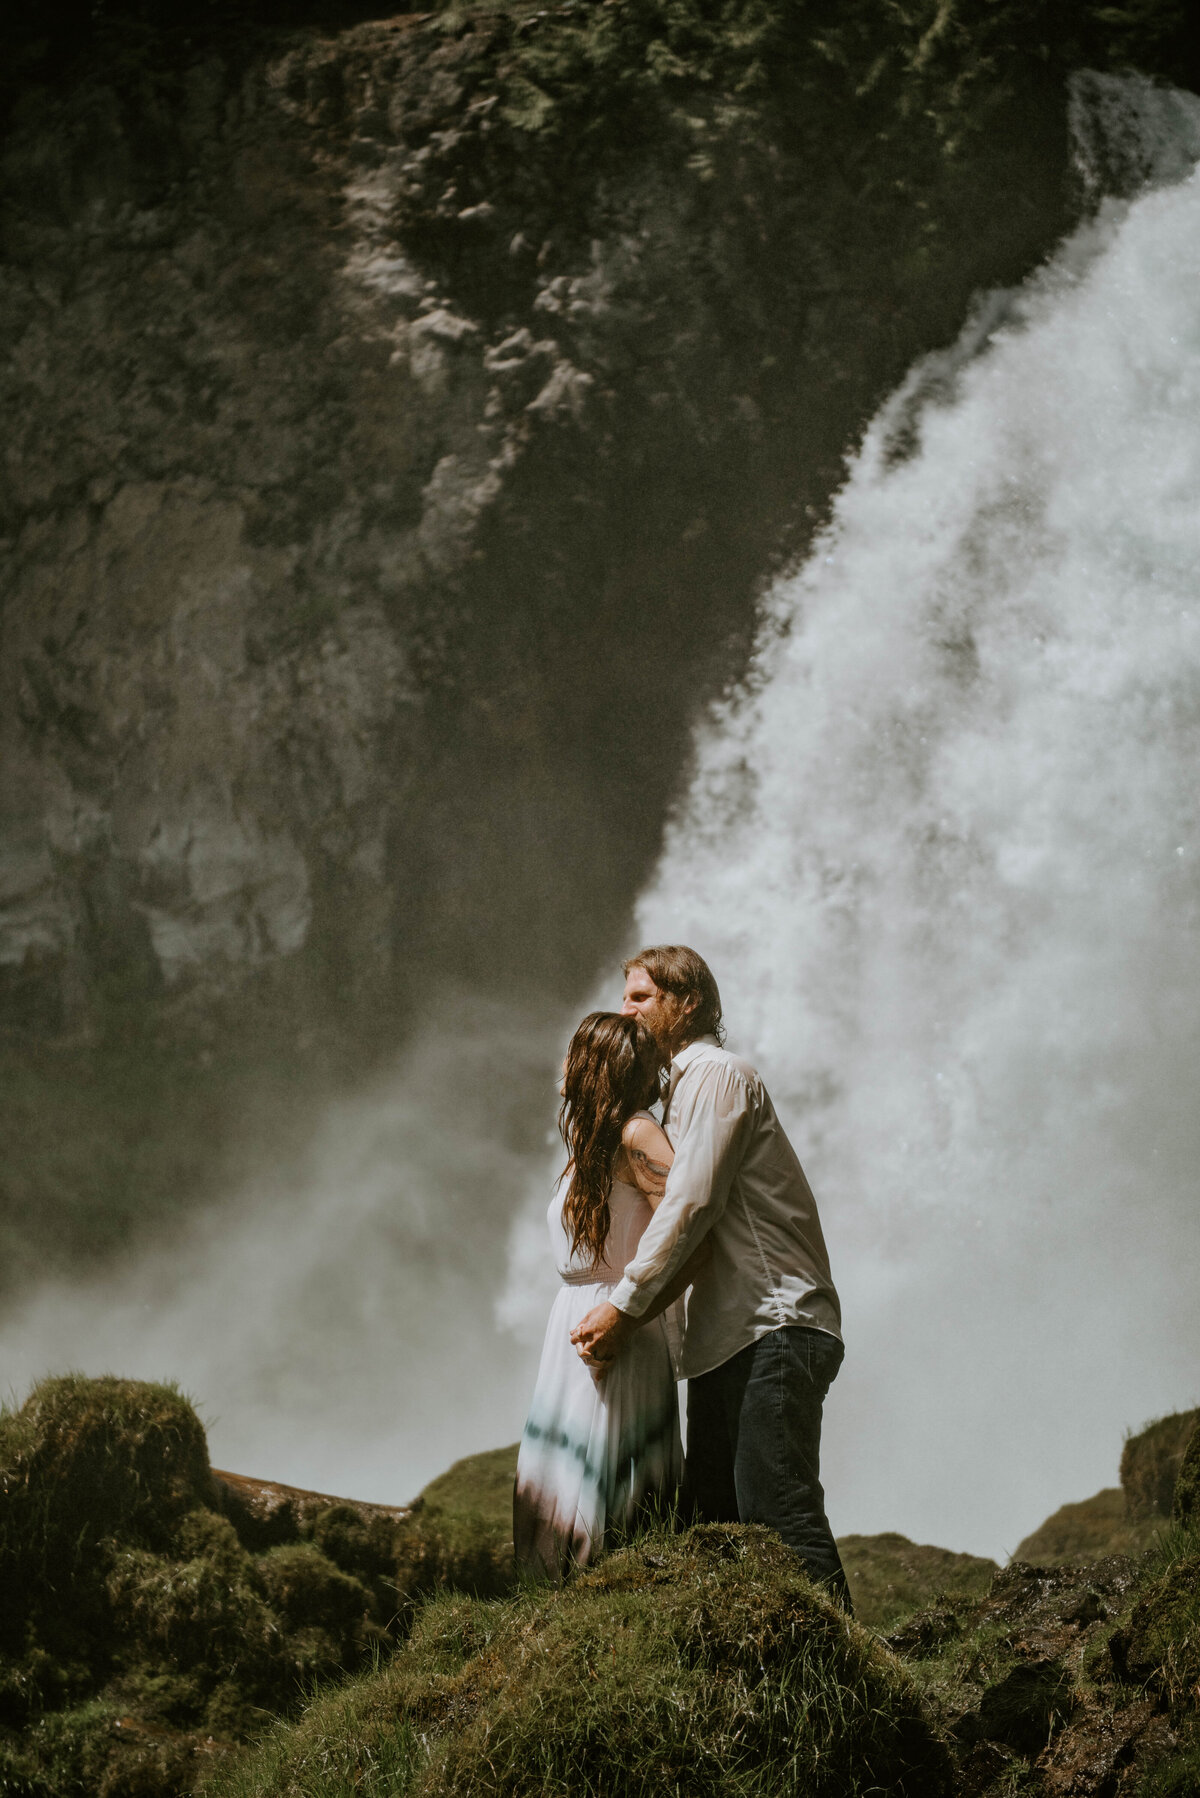 sahalie-falls-summer-oregon-photoshoot-adventure-photographer-bend-couple-forest-outfits-elopement-wedding8389